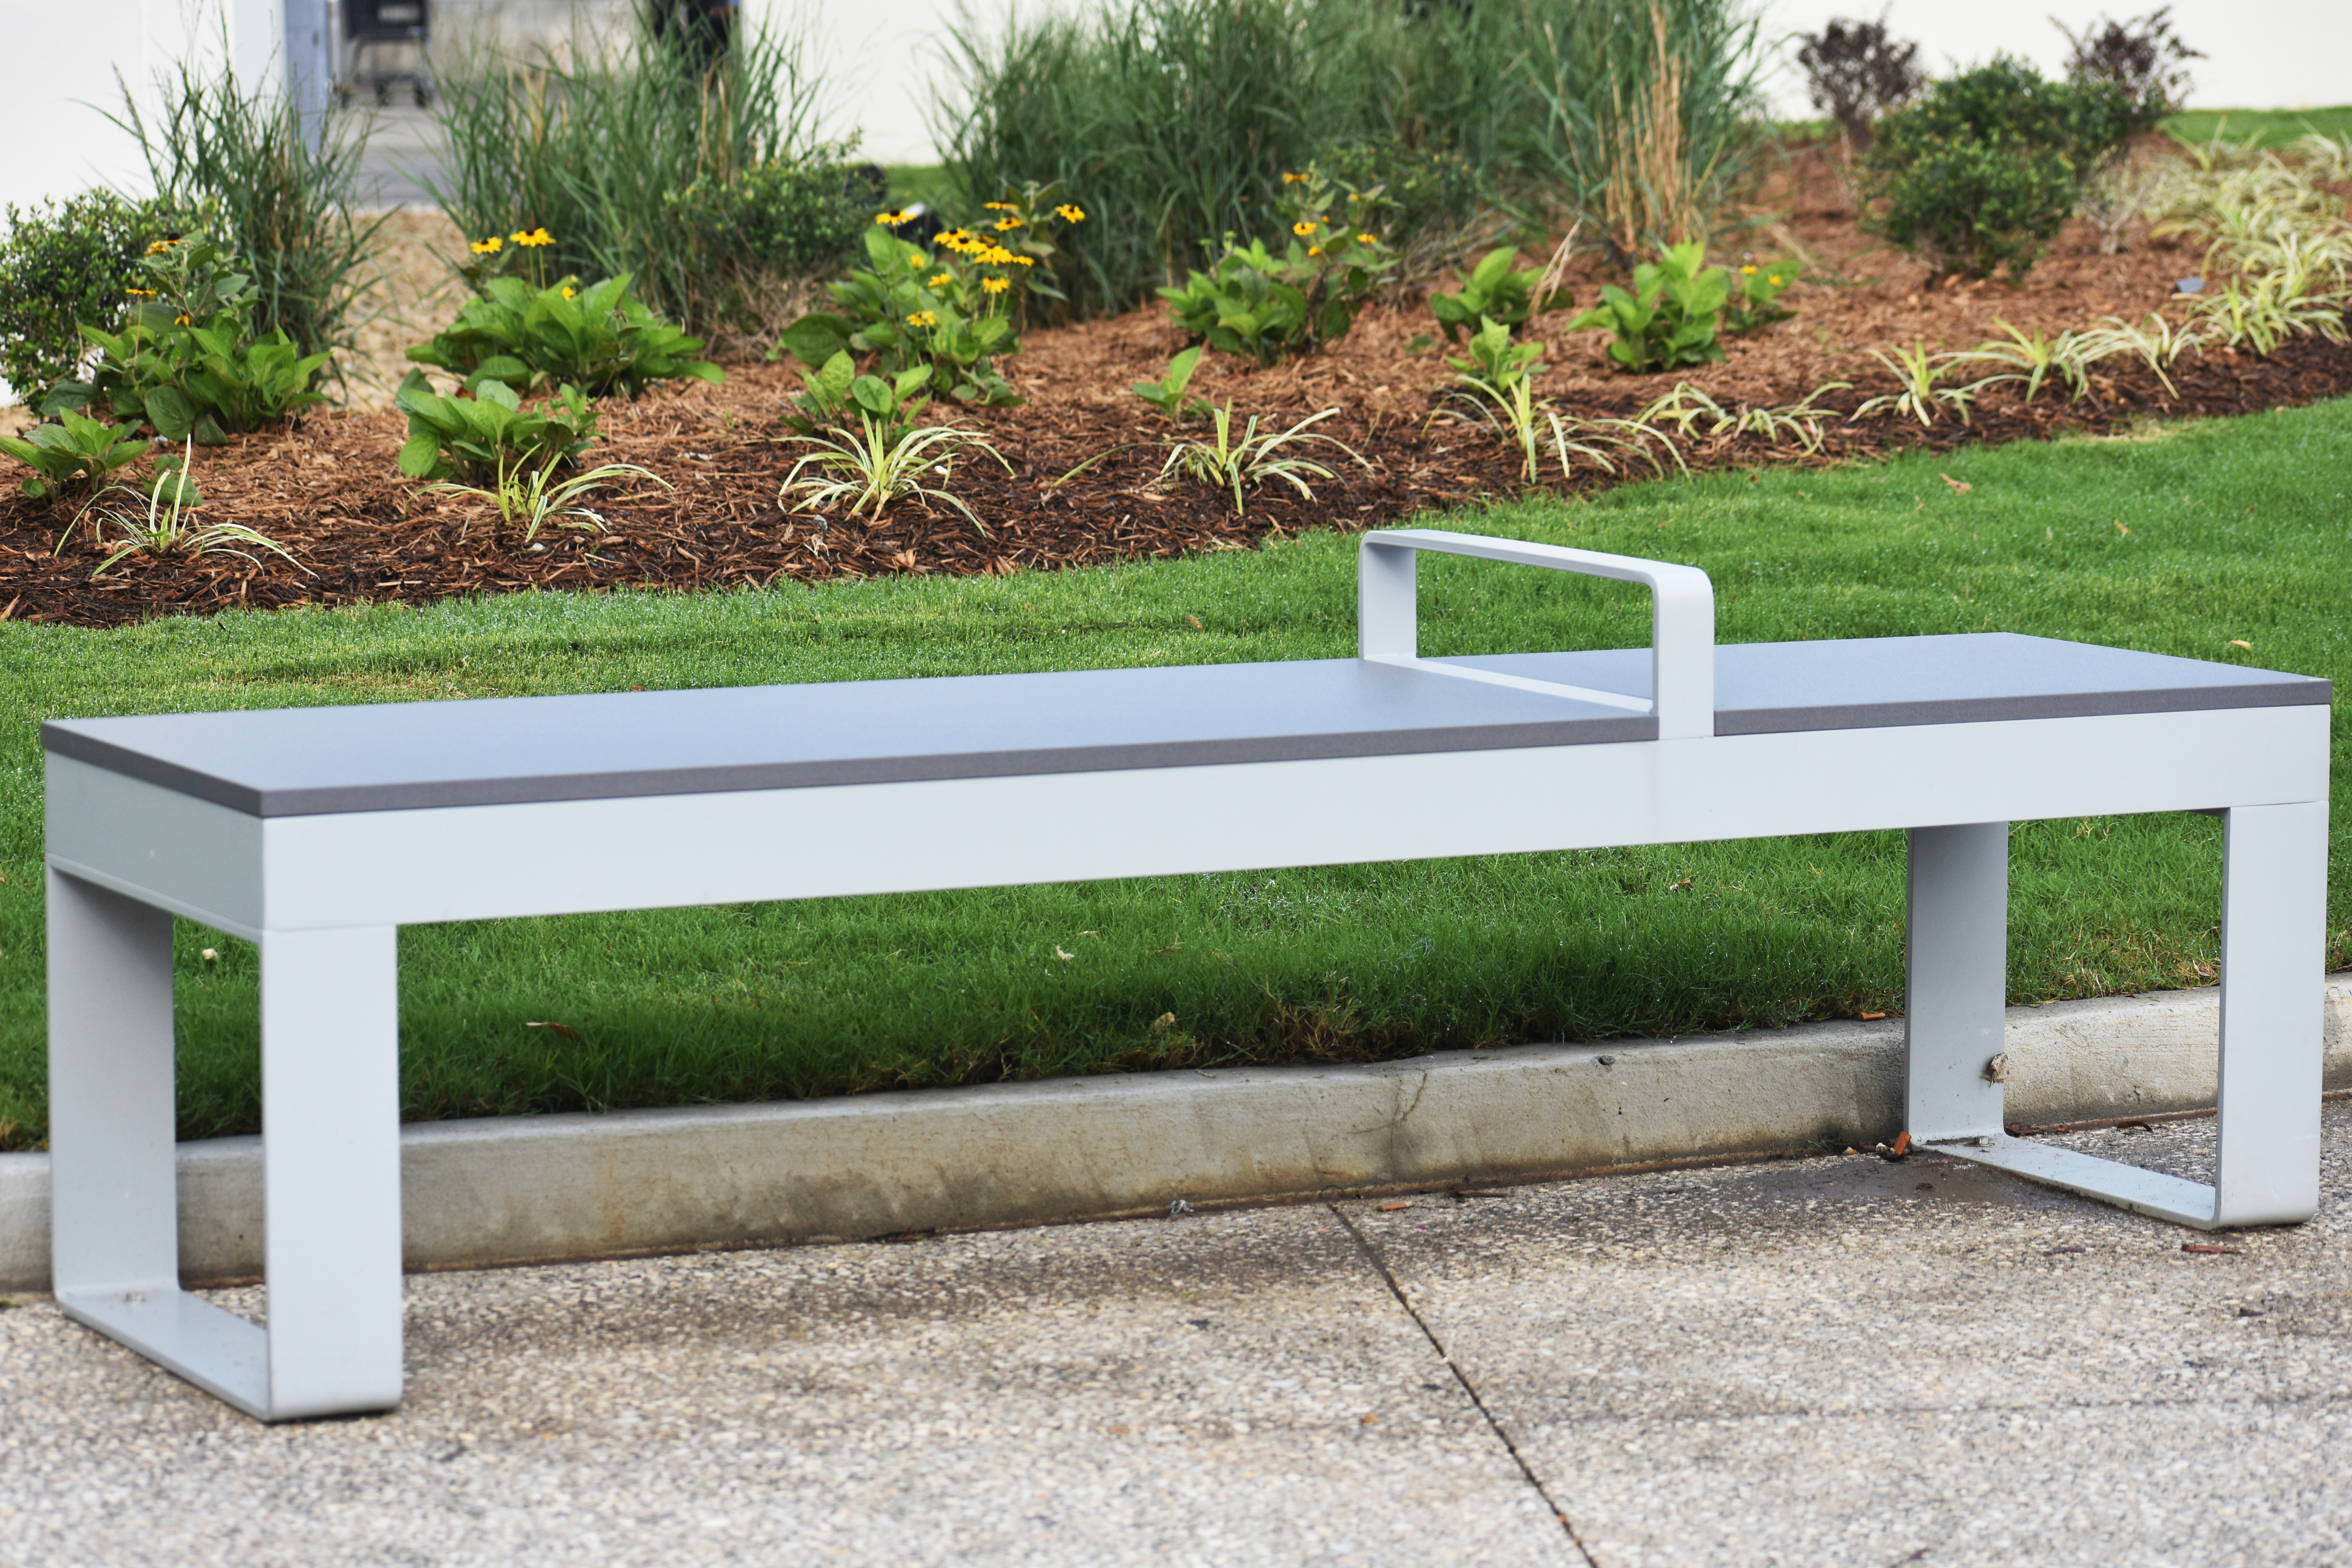 Outdoor Seating Materials Highlight Comfort Durability Hotel Management